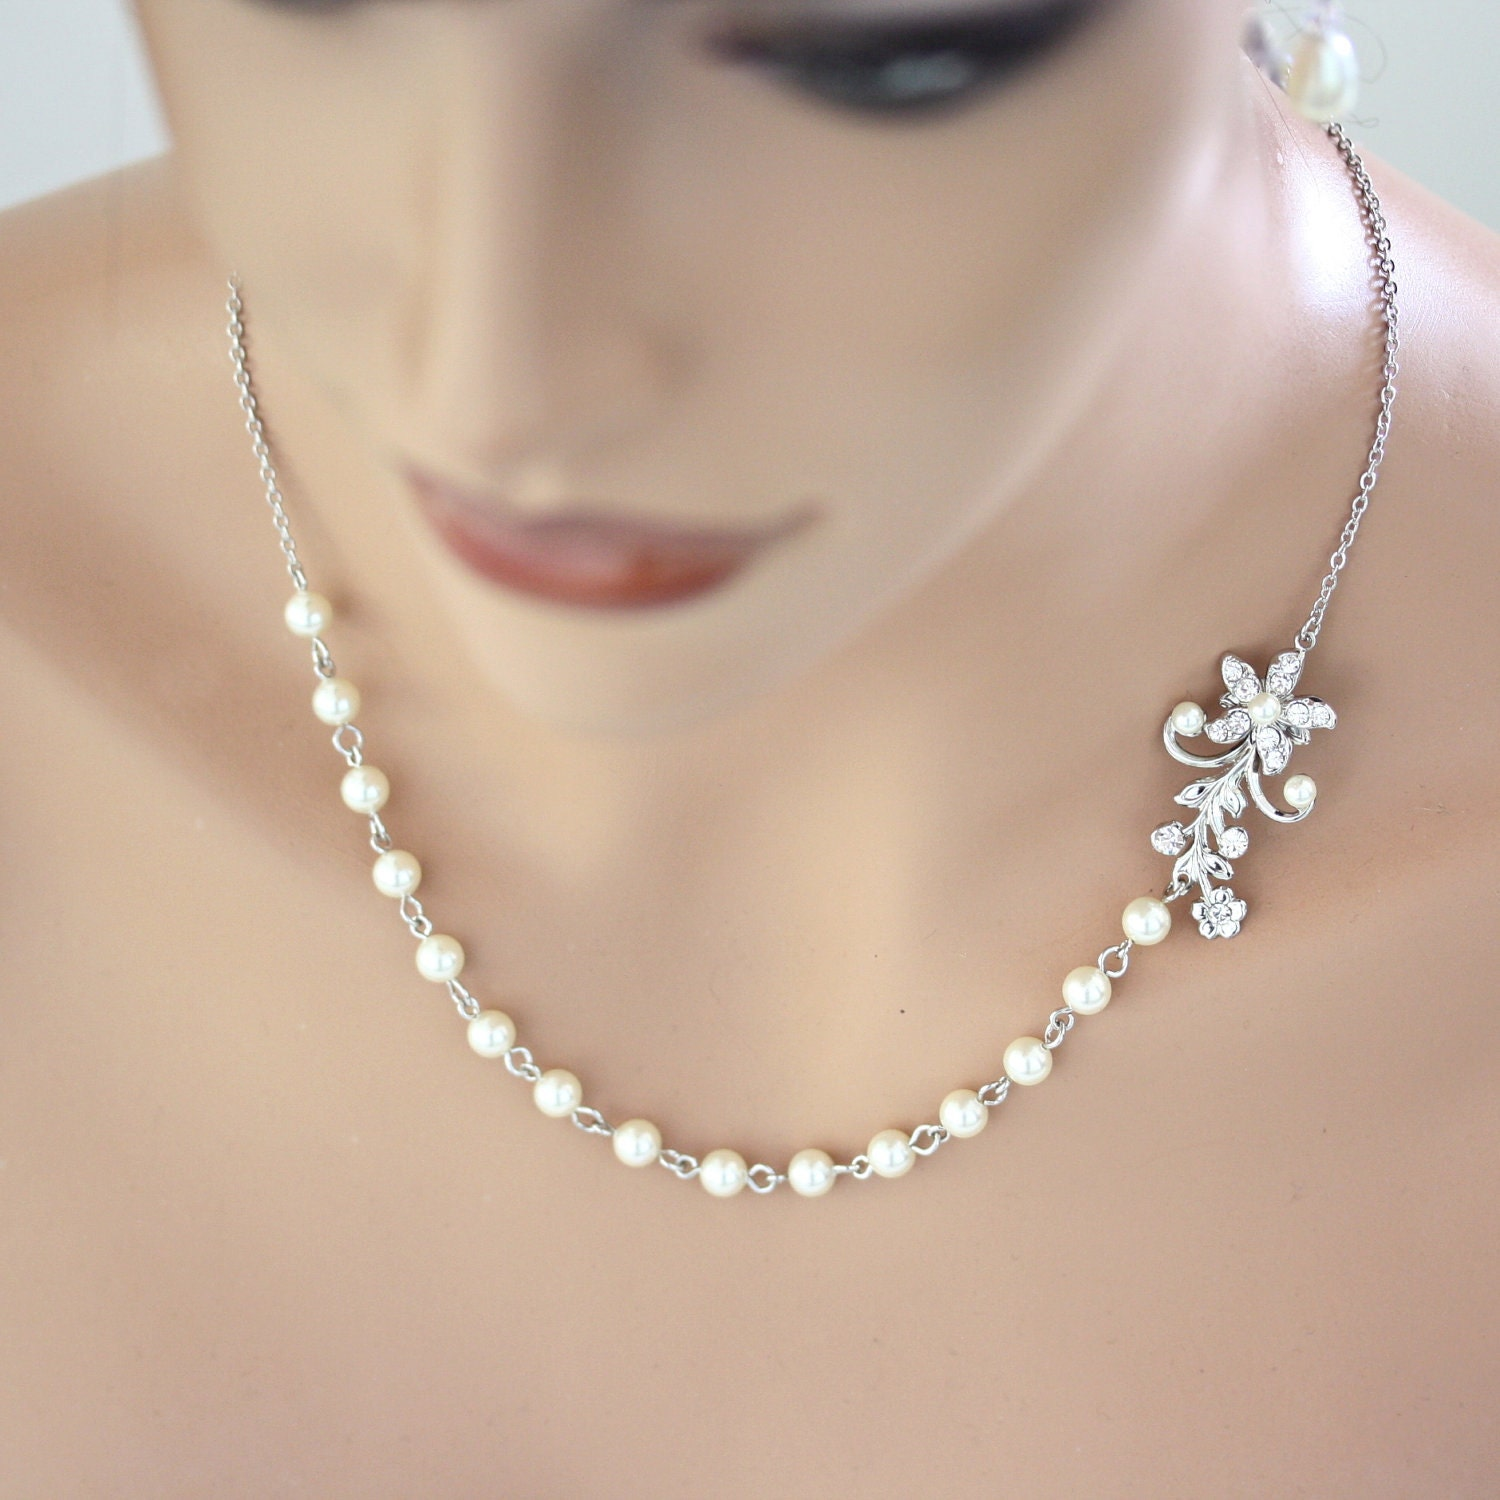 Items Similar To Pearl Bridal Necklace Vintage Wedding